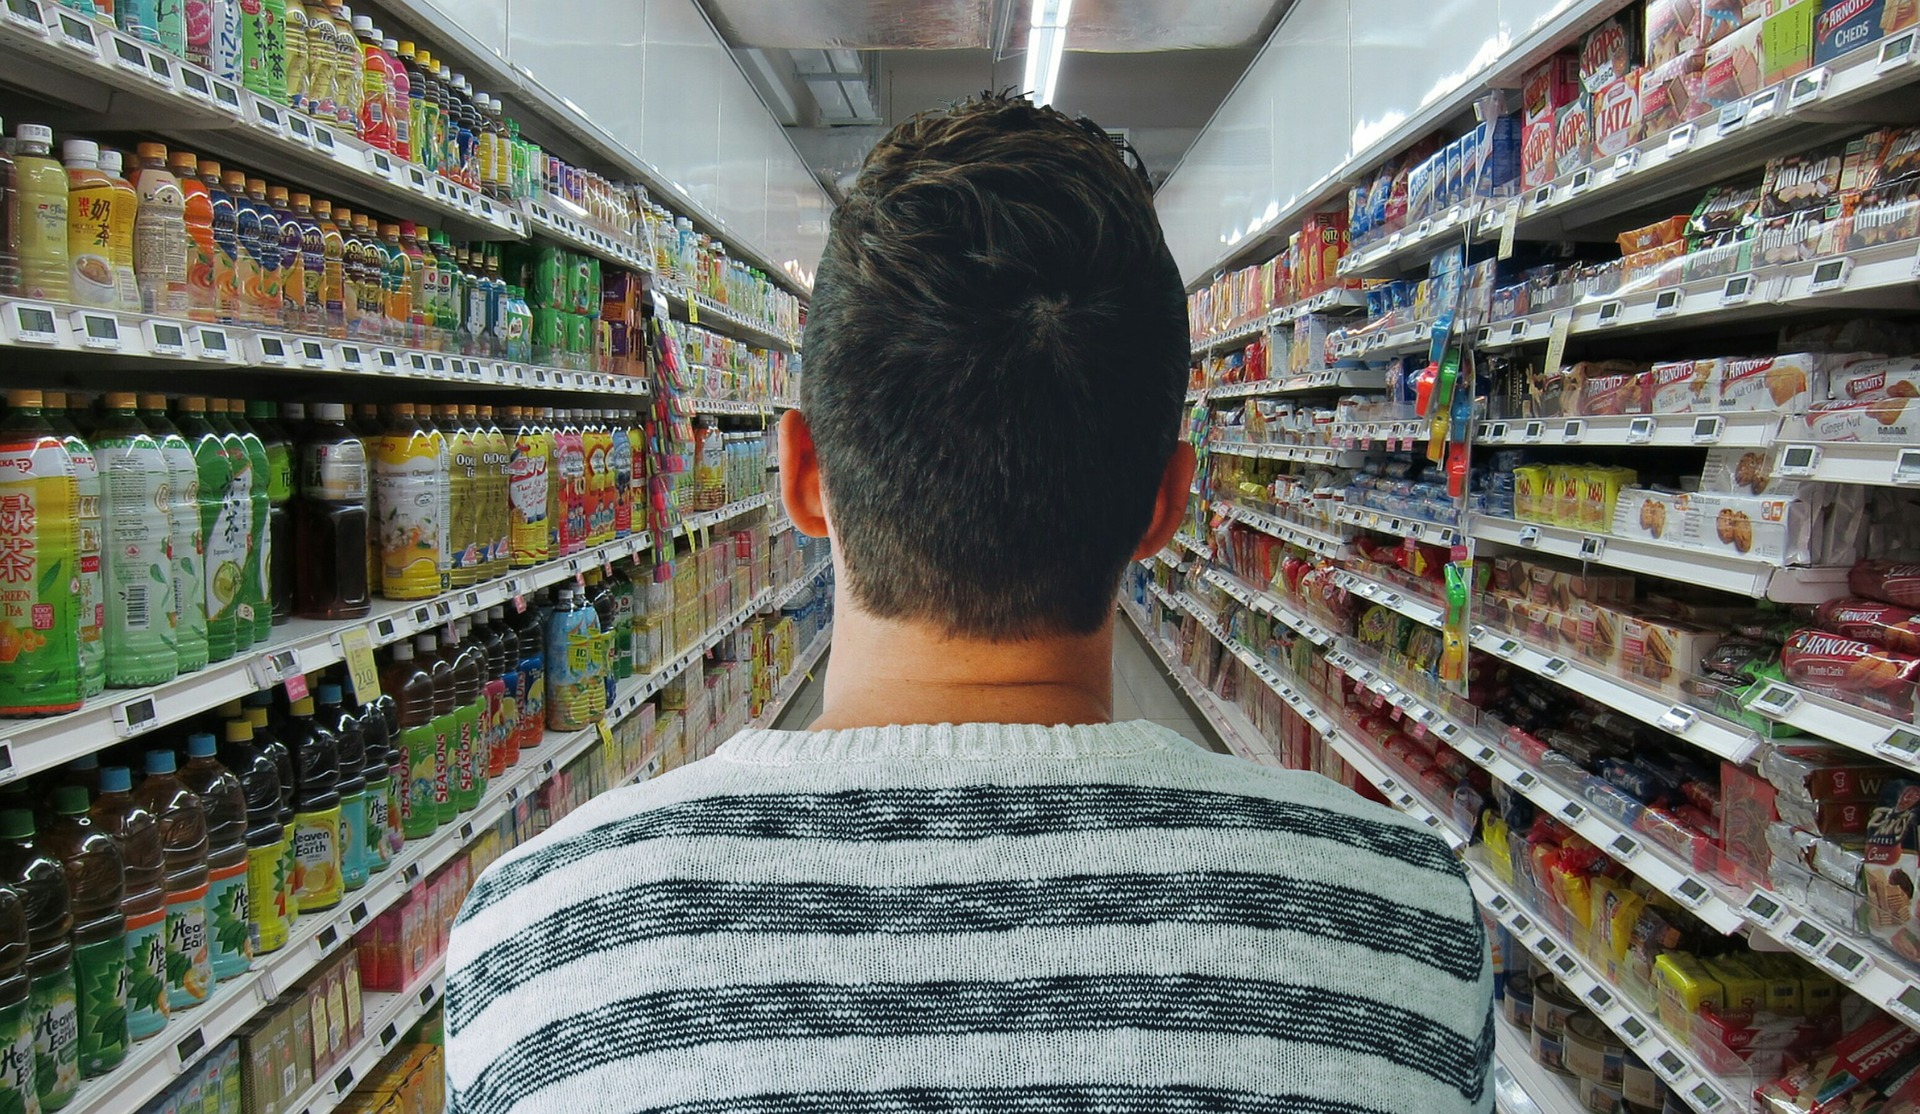 man standing in isle of a grocery store.